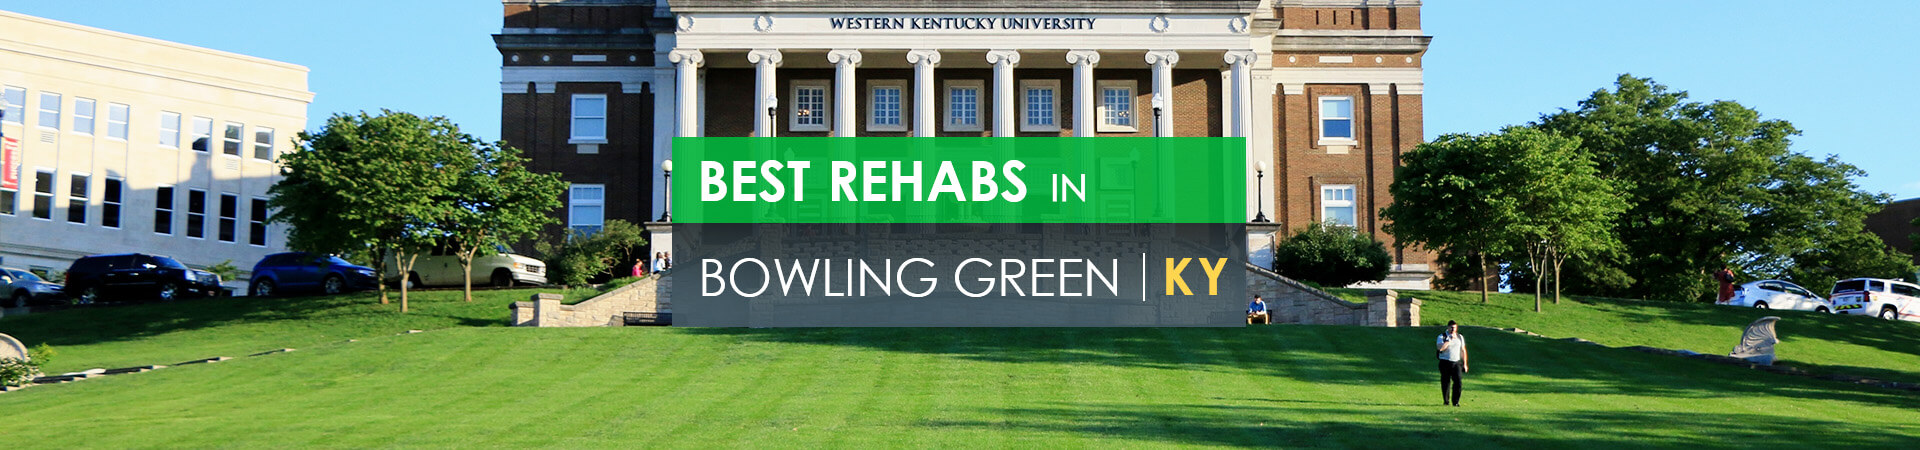 Best rehabs in Bowling Green, KY